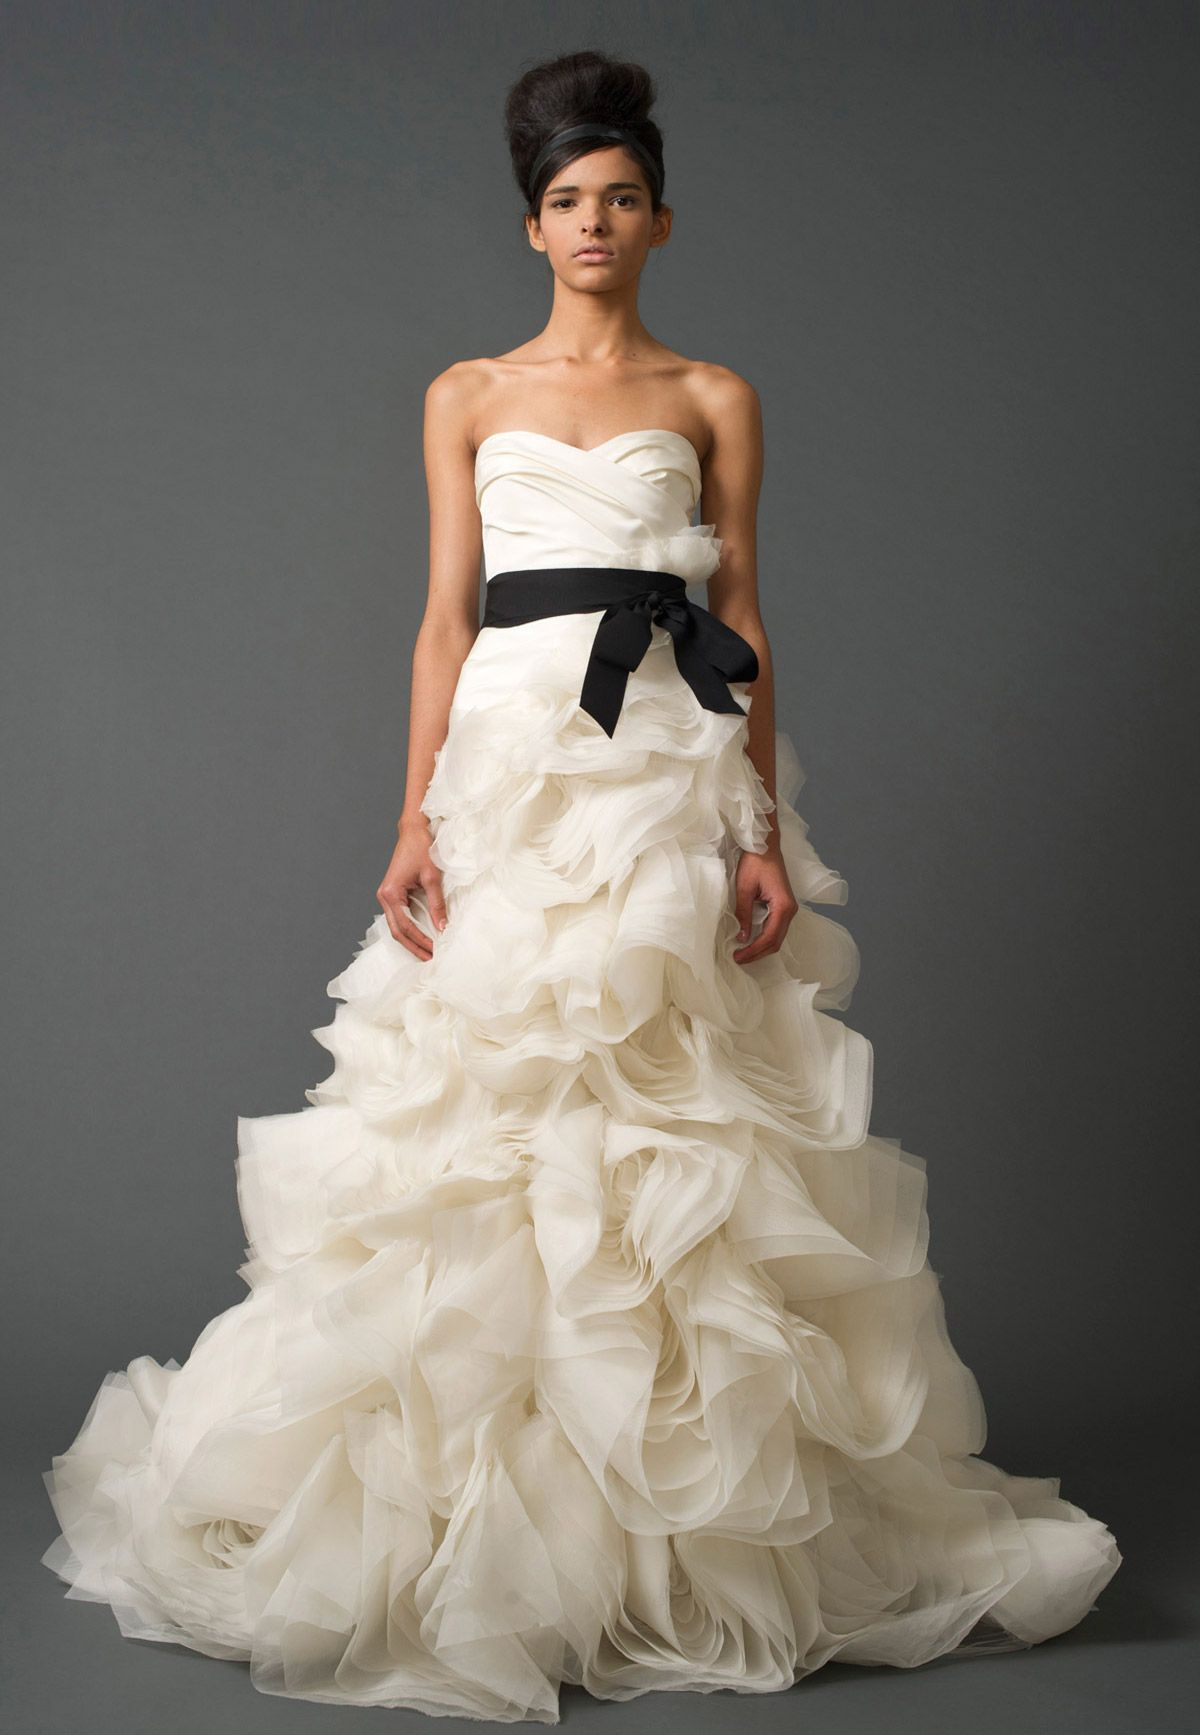 Presenting the Vera Wang Iconic Bridal Collection Browse